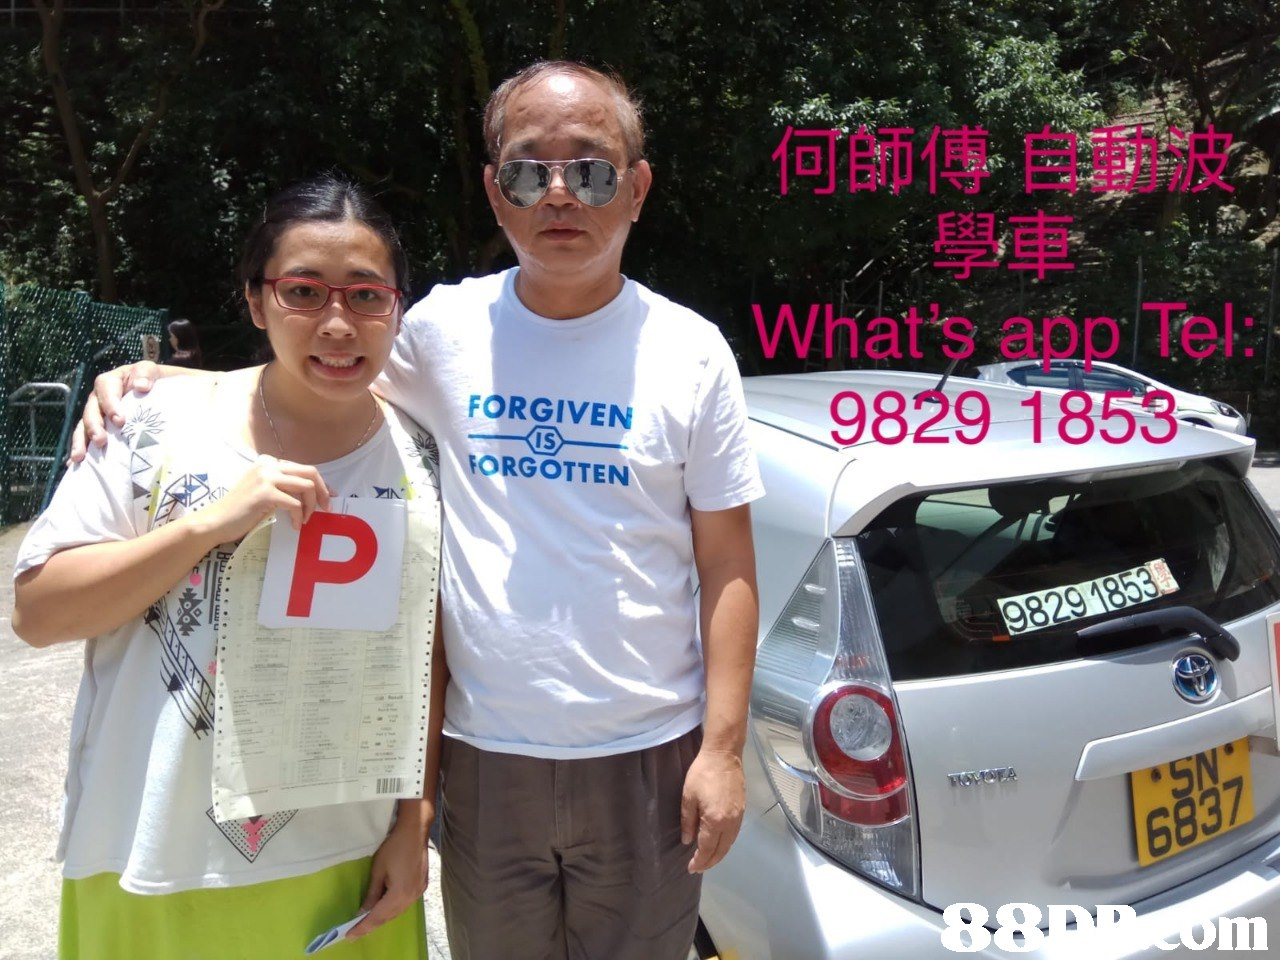 何師傅自動波 學車 What's app Tel: FORGIVEN RT9829 1853 IS ORGOTTEN 5837  car,vehicle,motor vehicle,automotive design,recreation